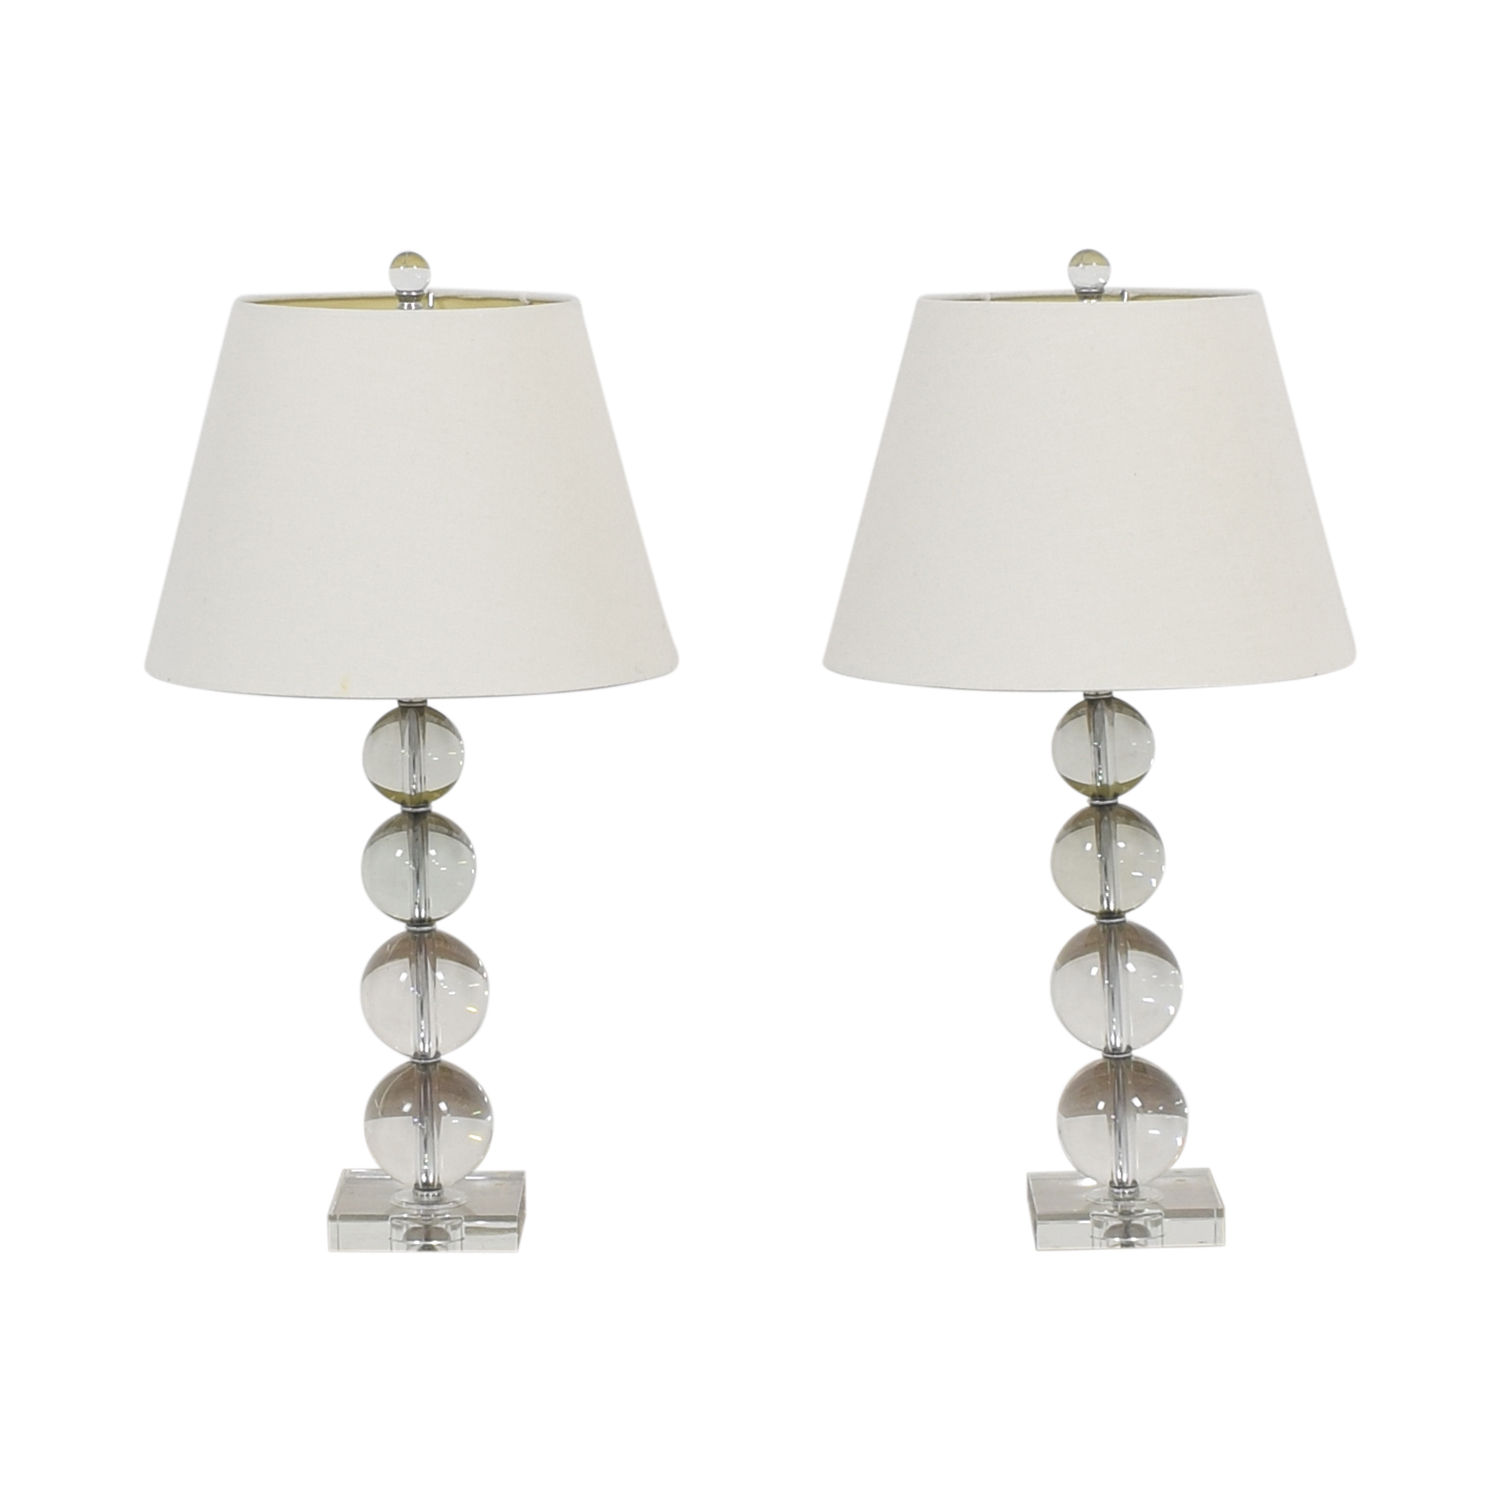 buy Macy's Bubble Table Lamps Macy's Decor